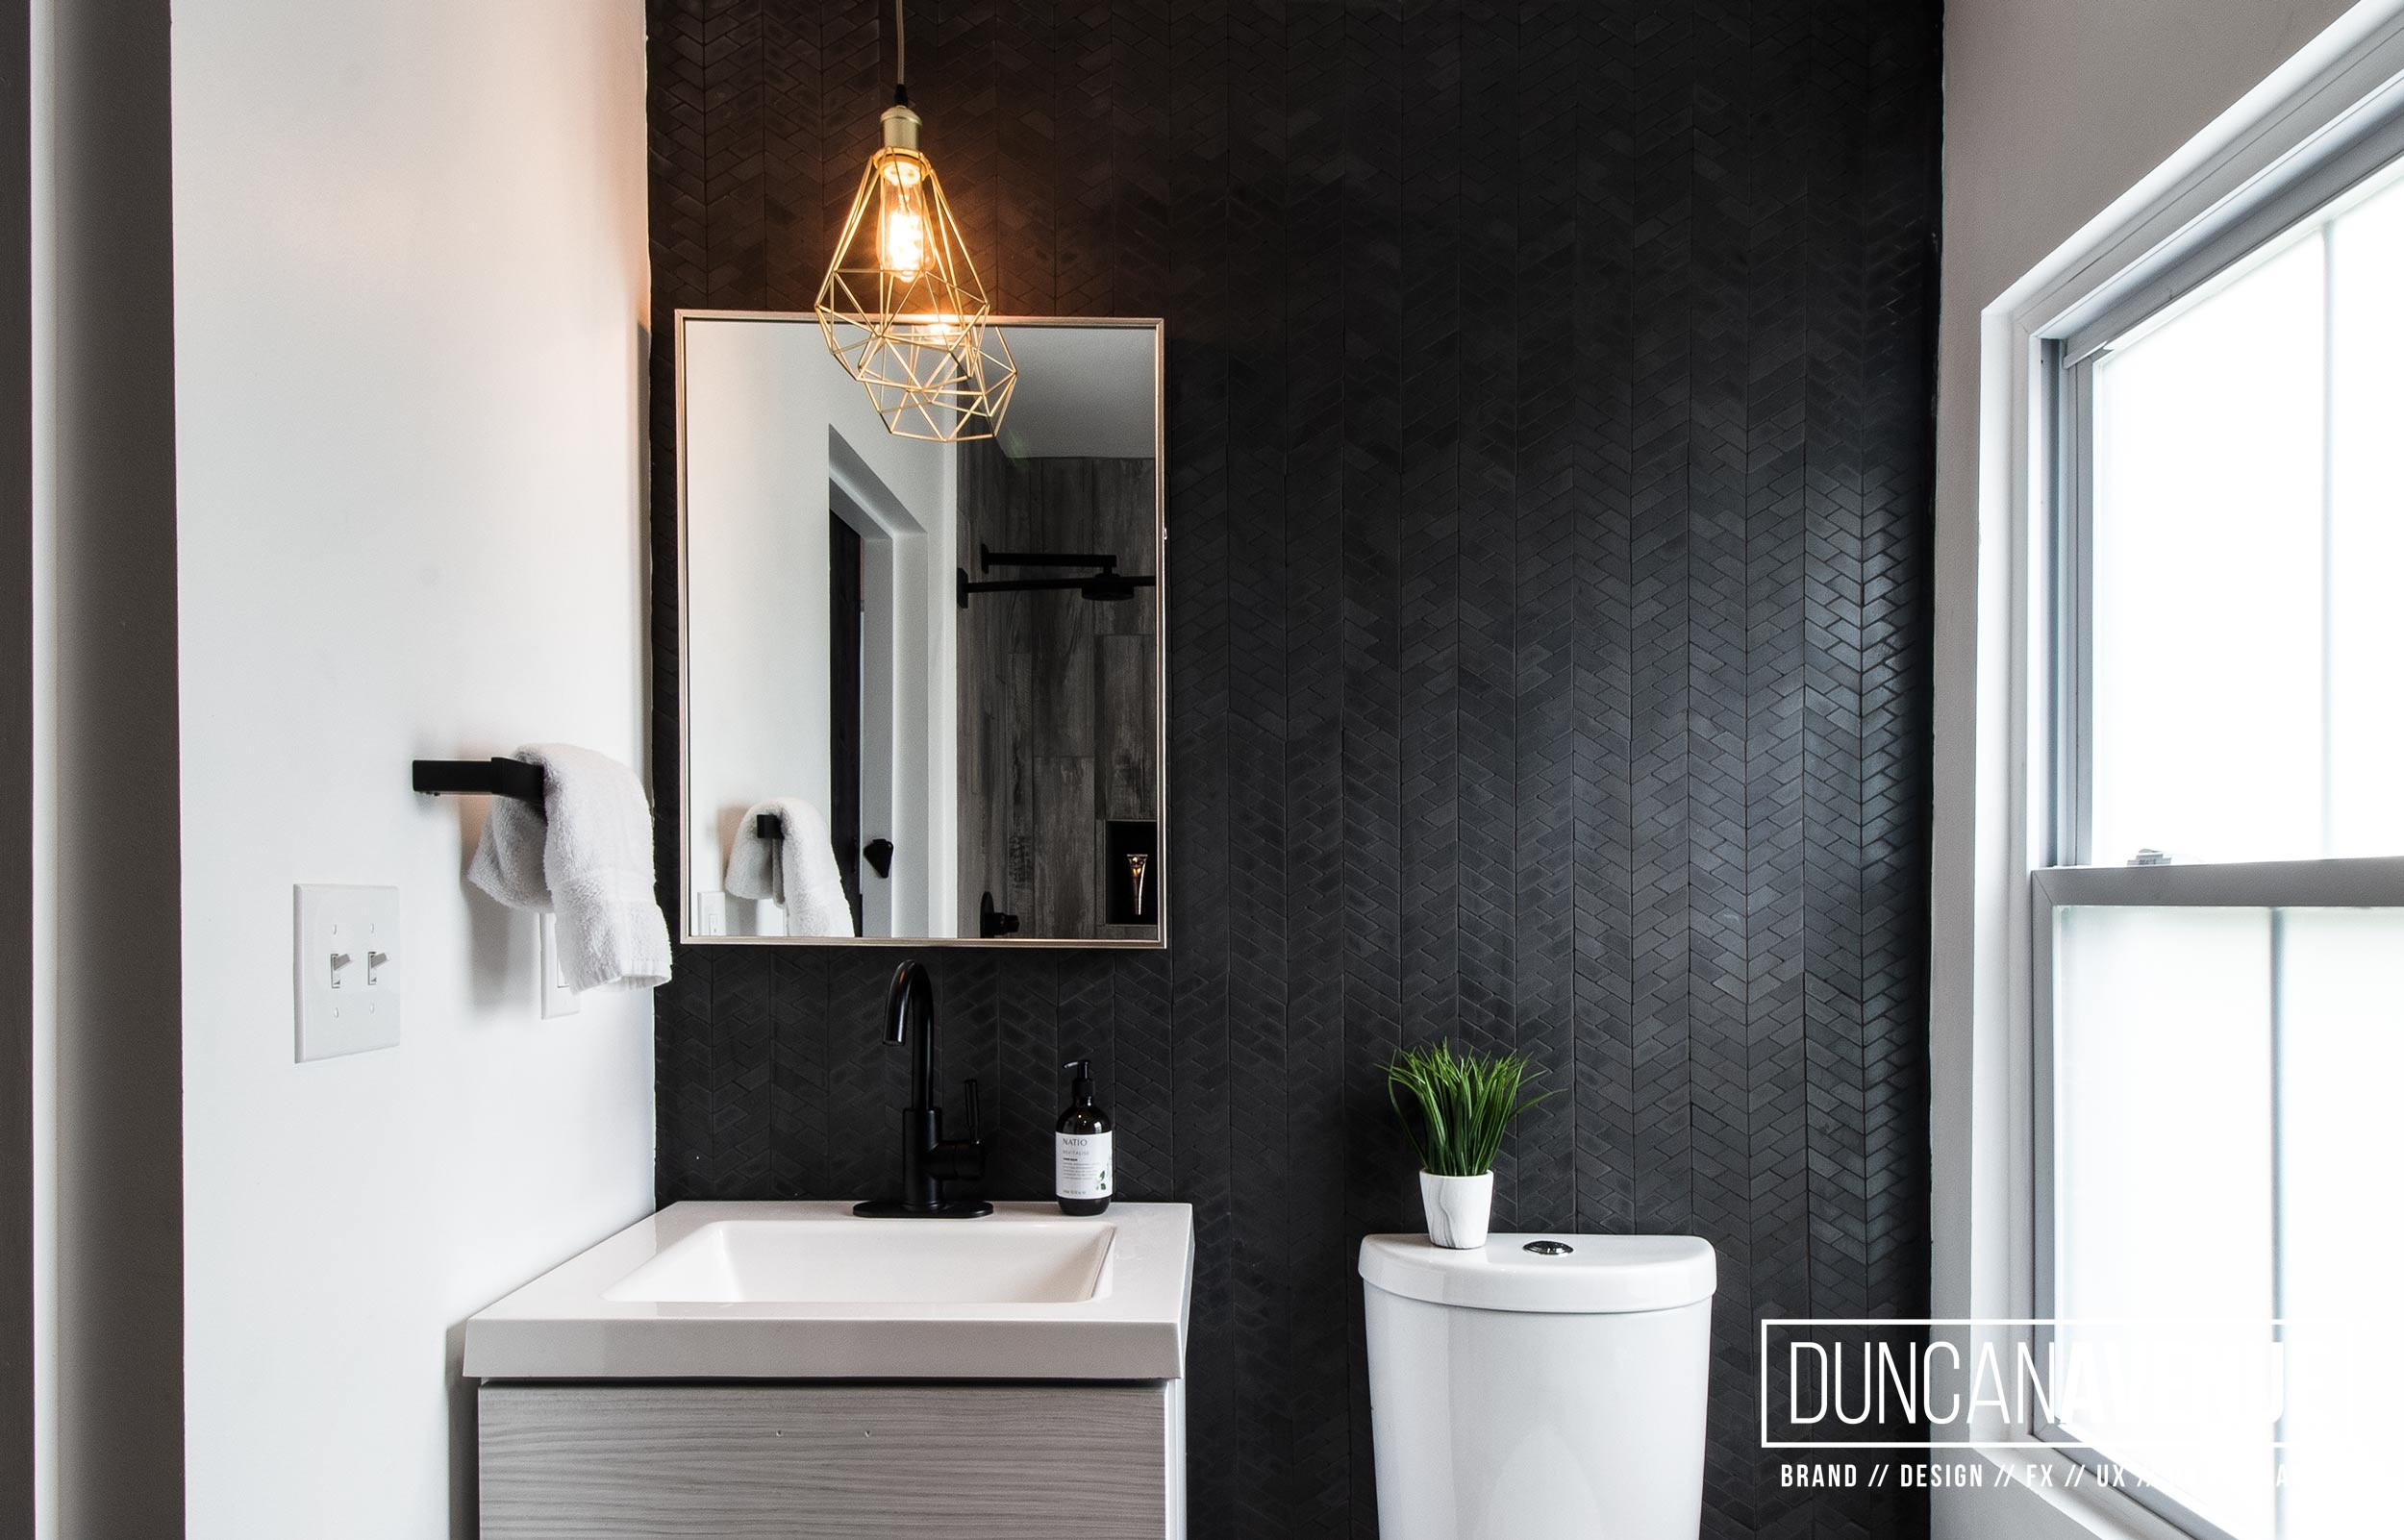 Modern Rustic Bathroom Design - Duncan Avenue Interior Design Studio